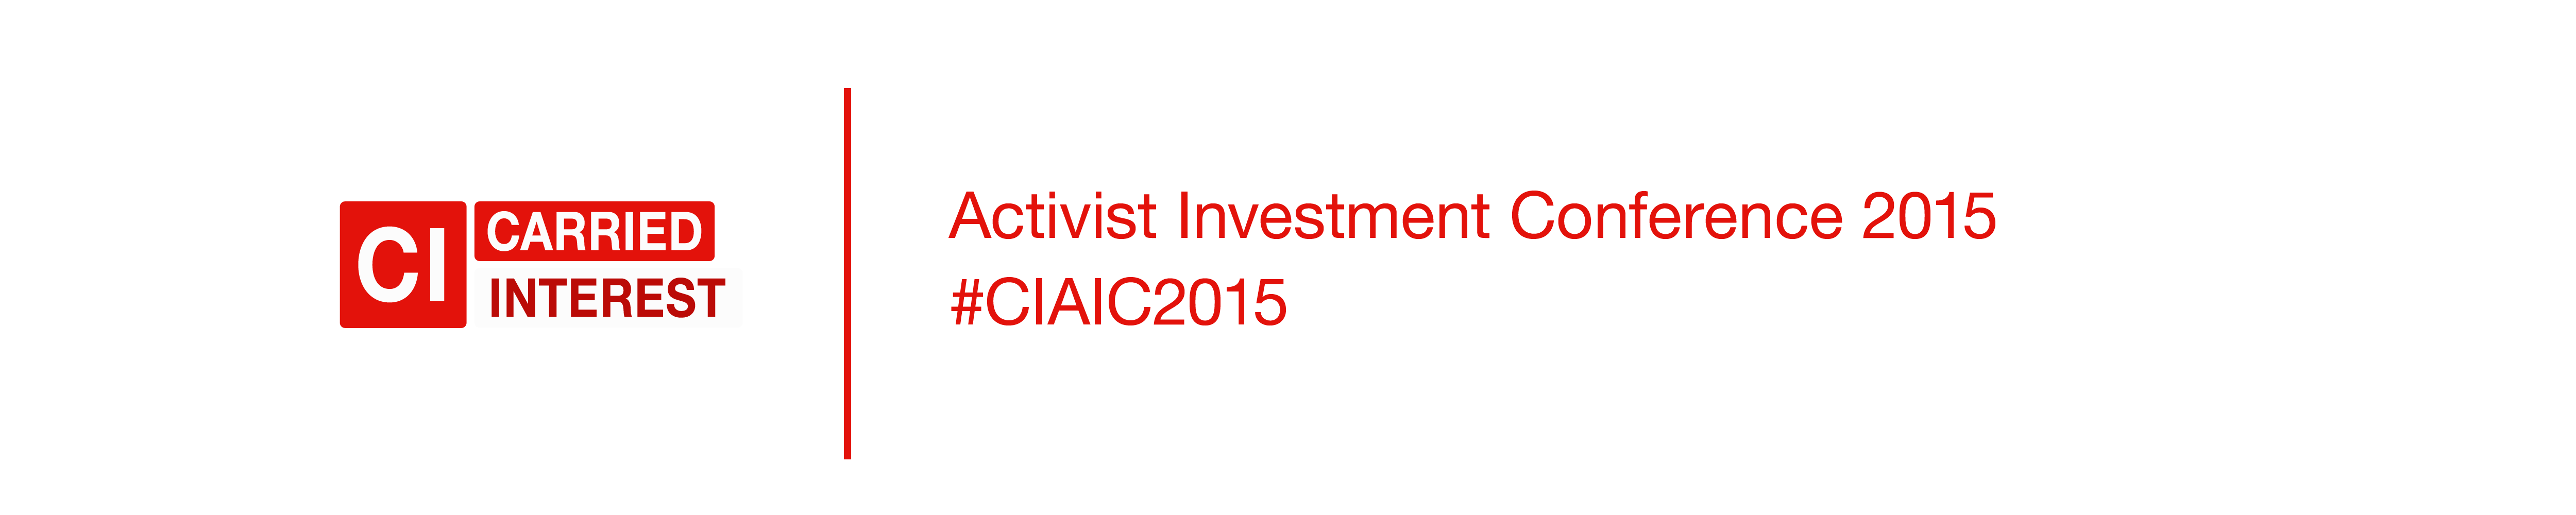 CI Activist Investment Conference 2015